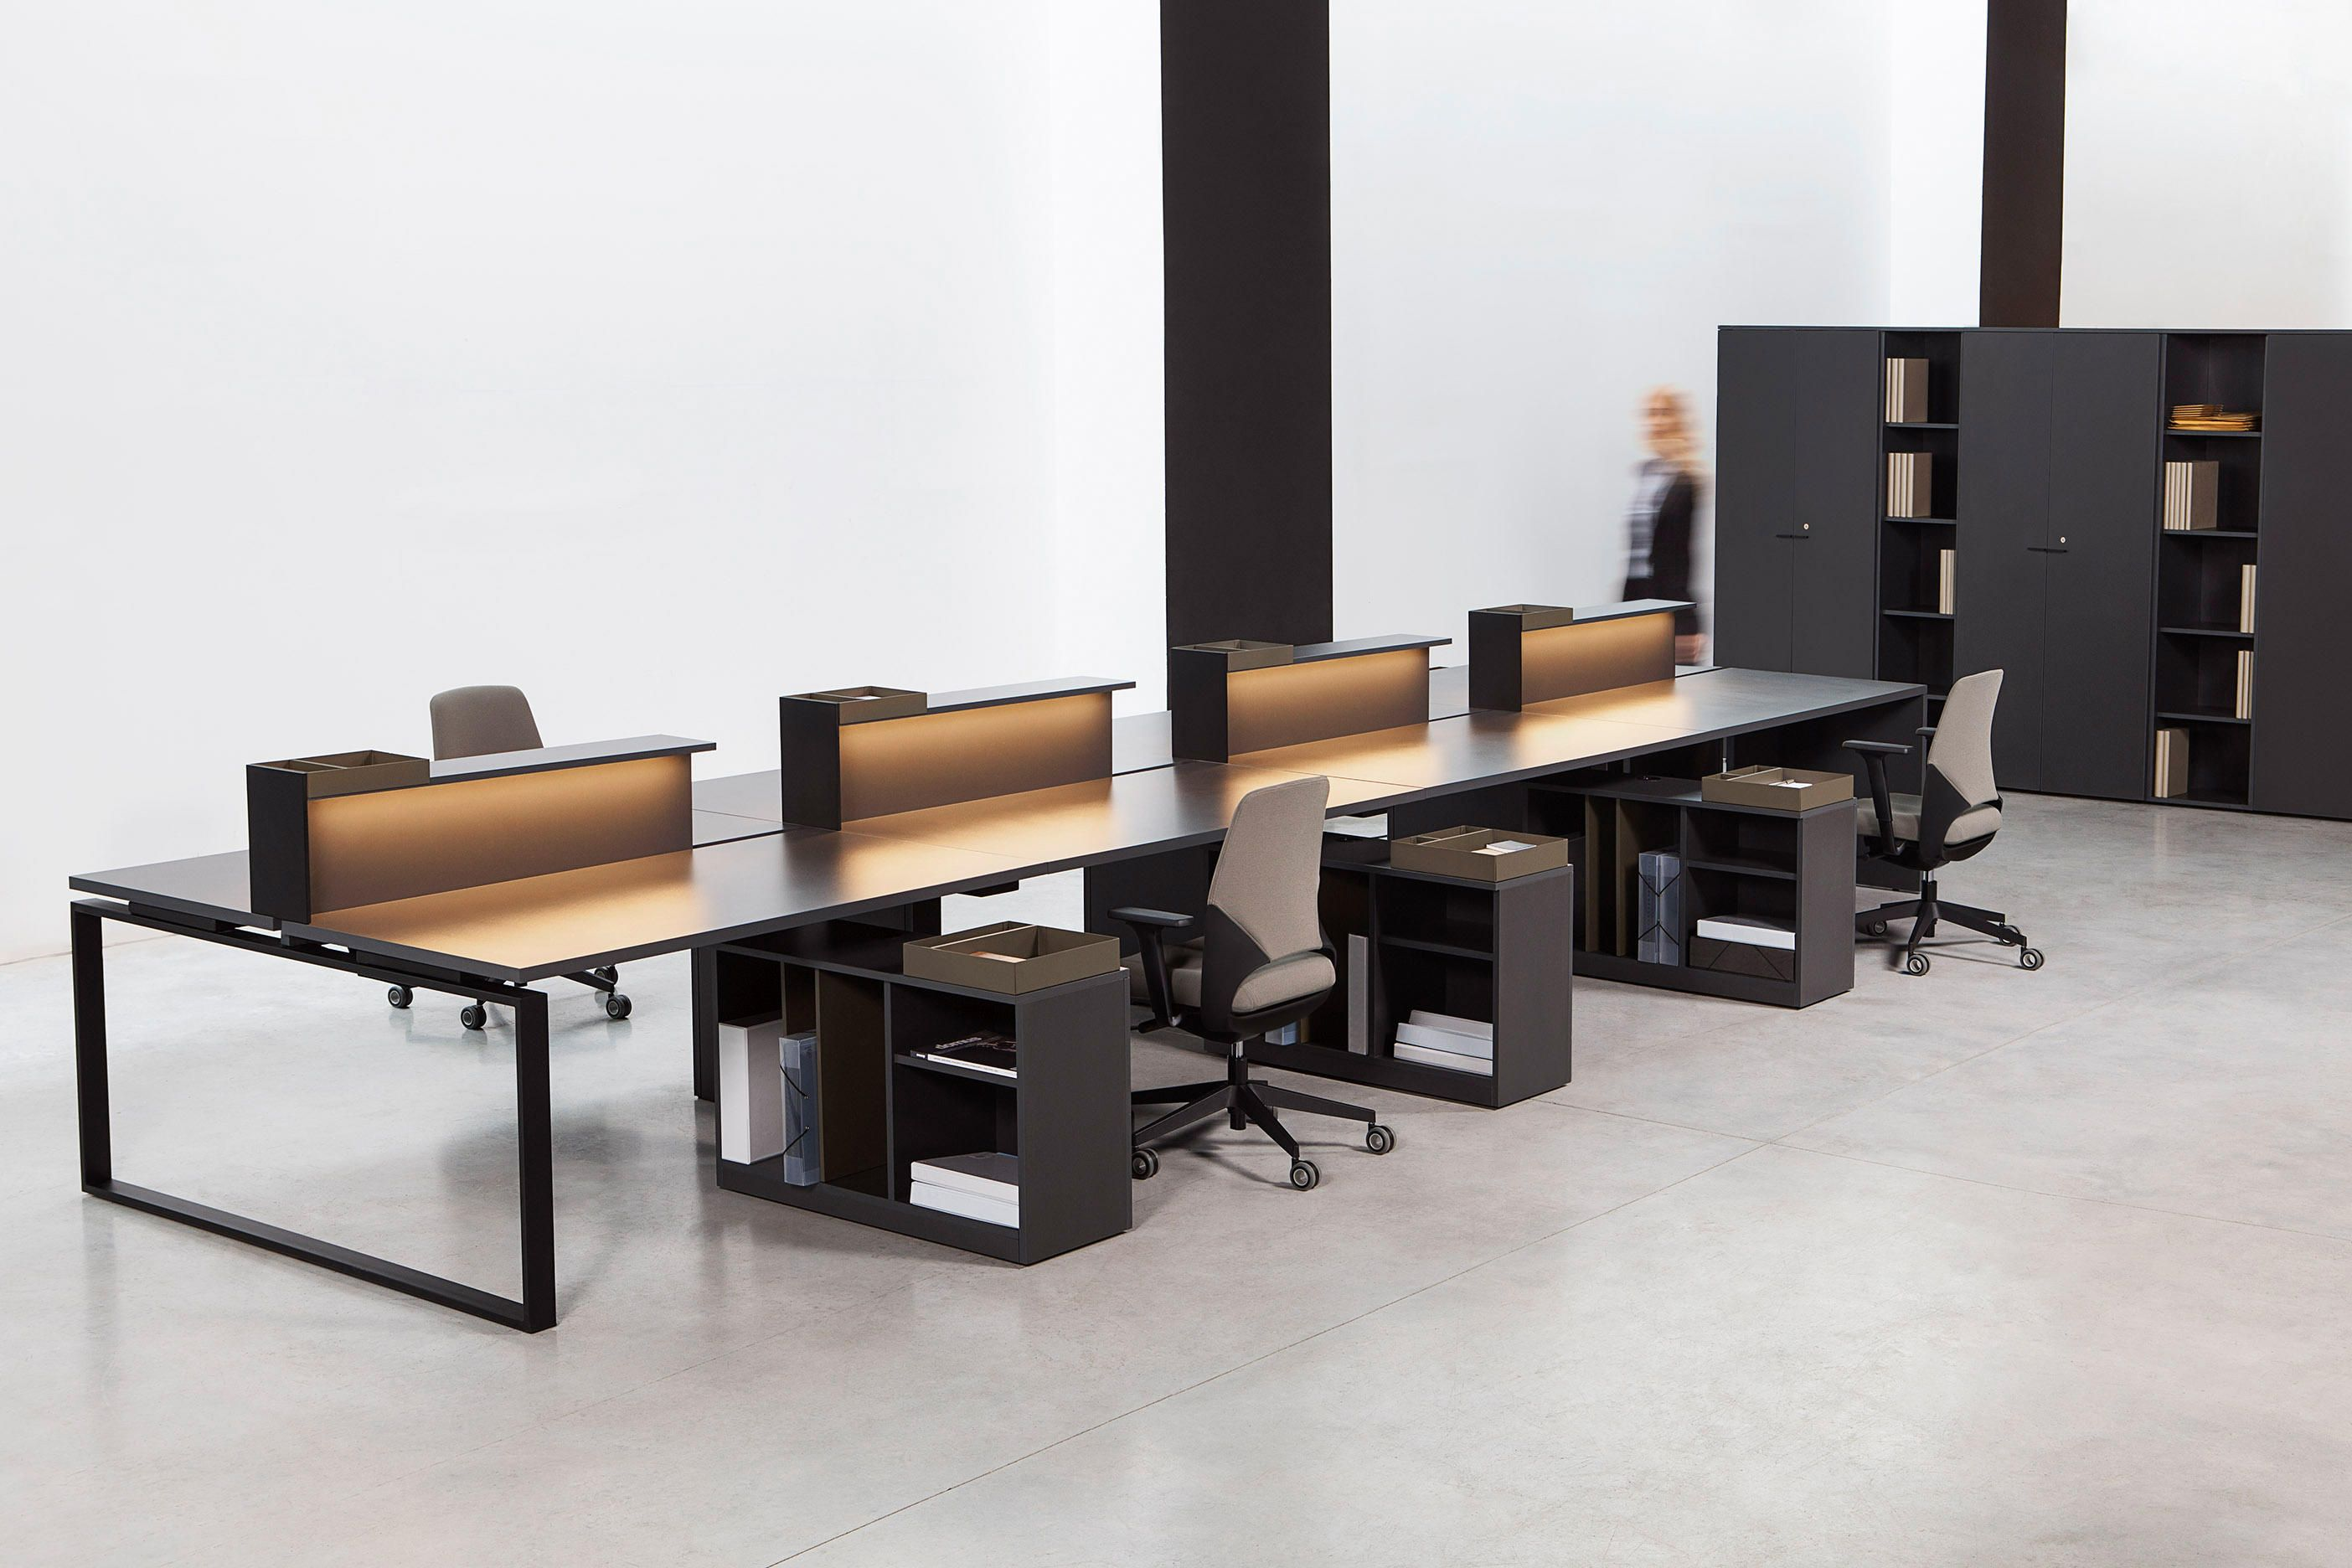 Bat Office Designer Desking Systems From Akaba All Information High Resolution Images Cads Catalogues Contact Find